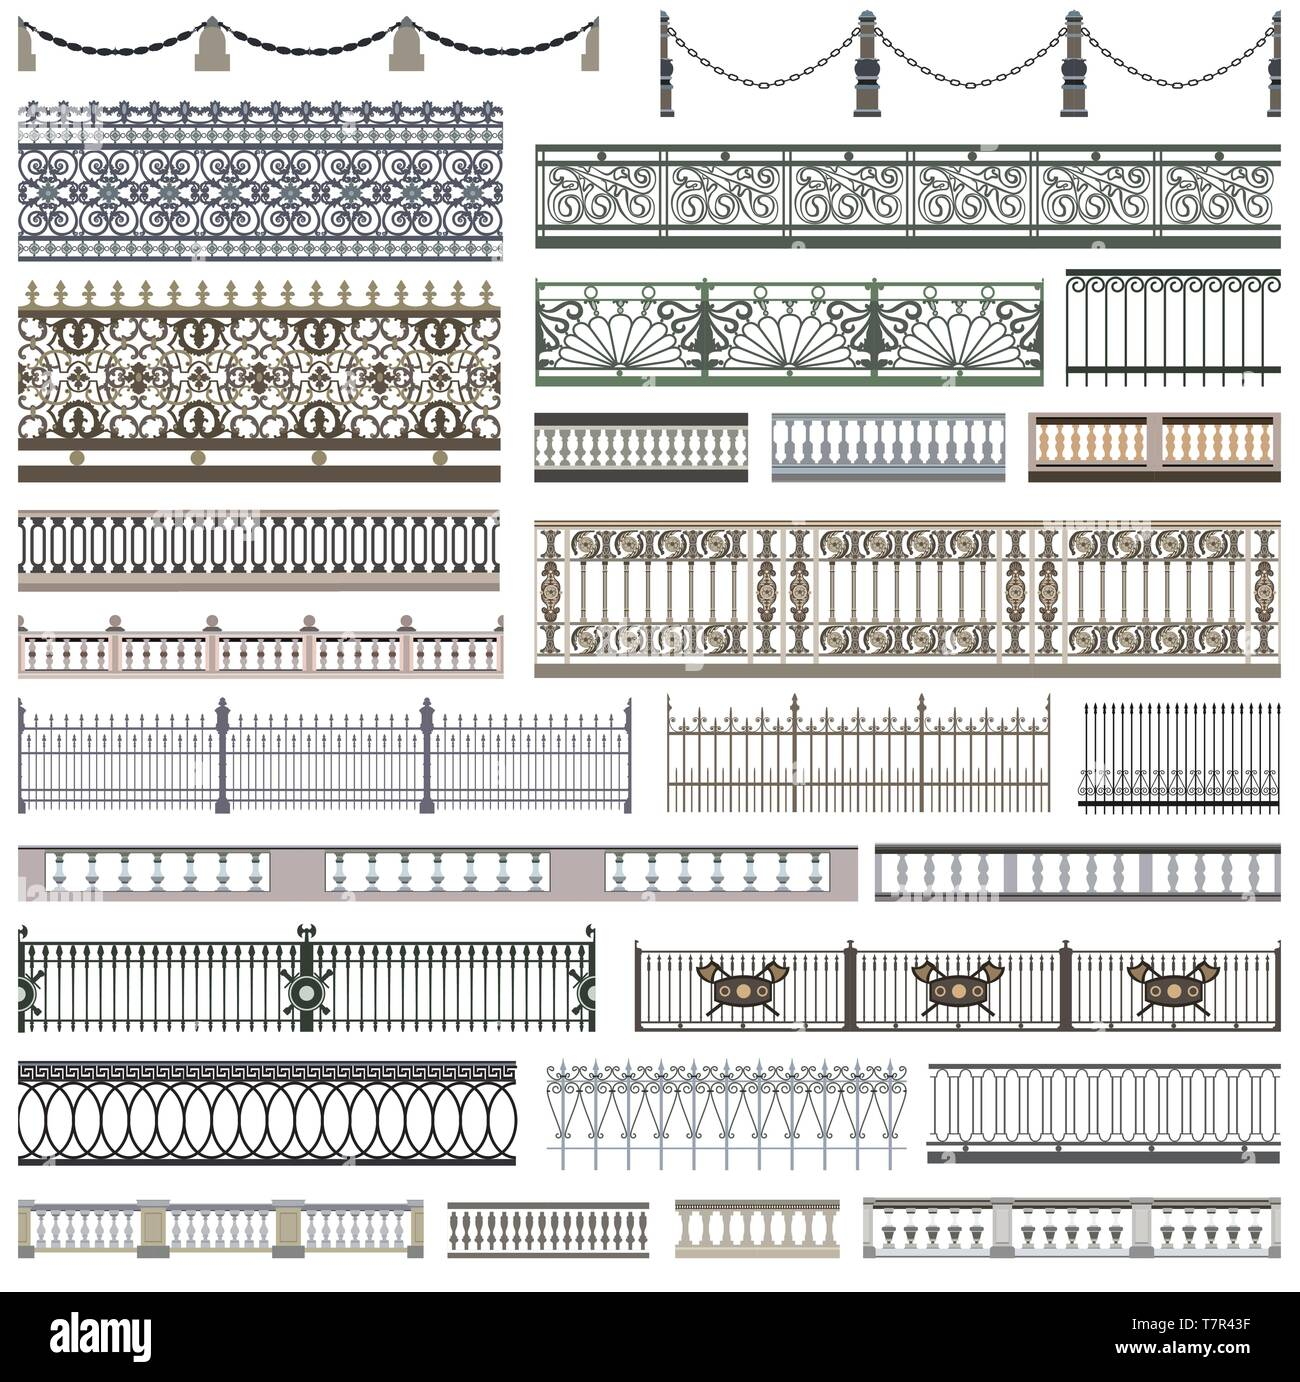 fence patterns and decorative design elements with seamless borders - Stock Vector